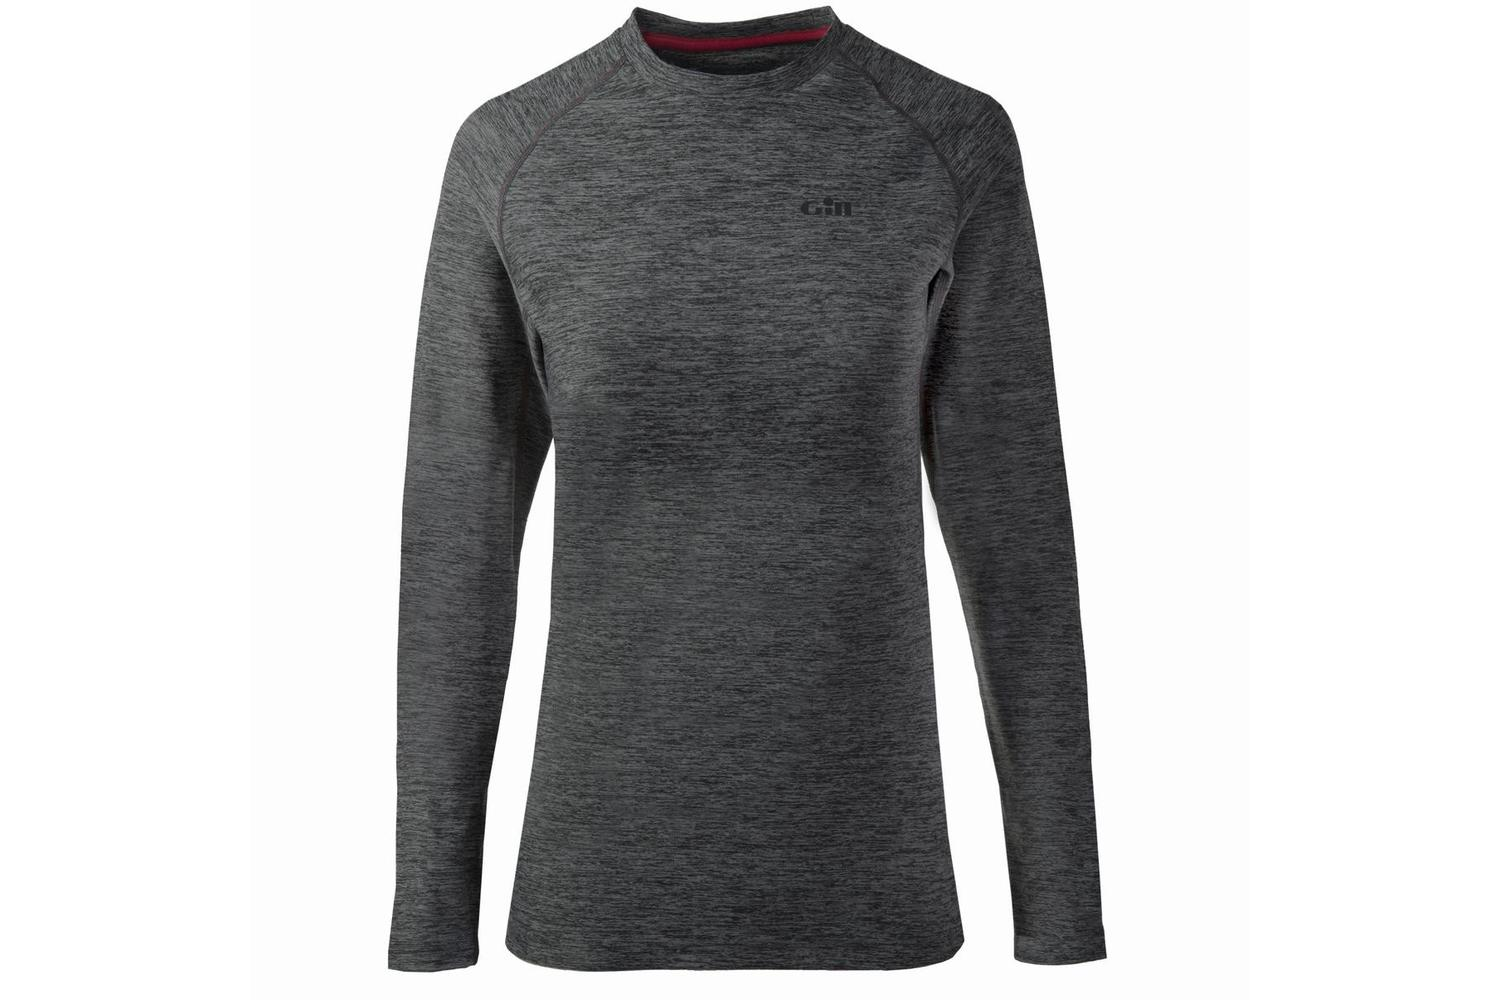 Gill dames thermo long sleeve grijs XL